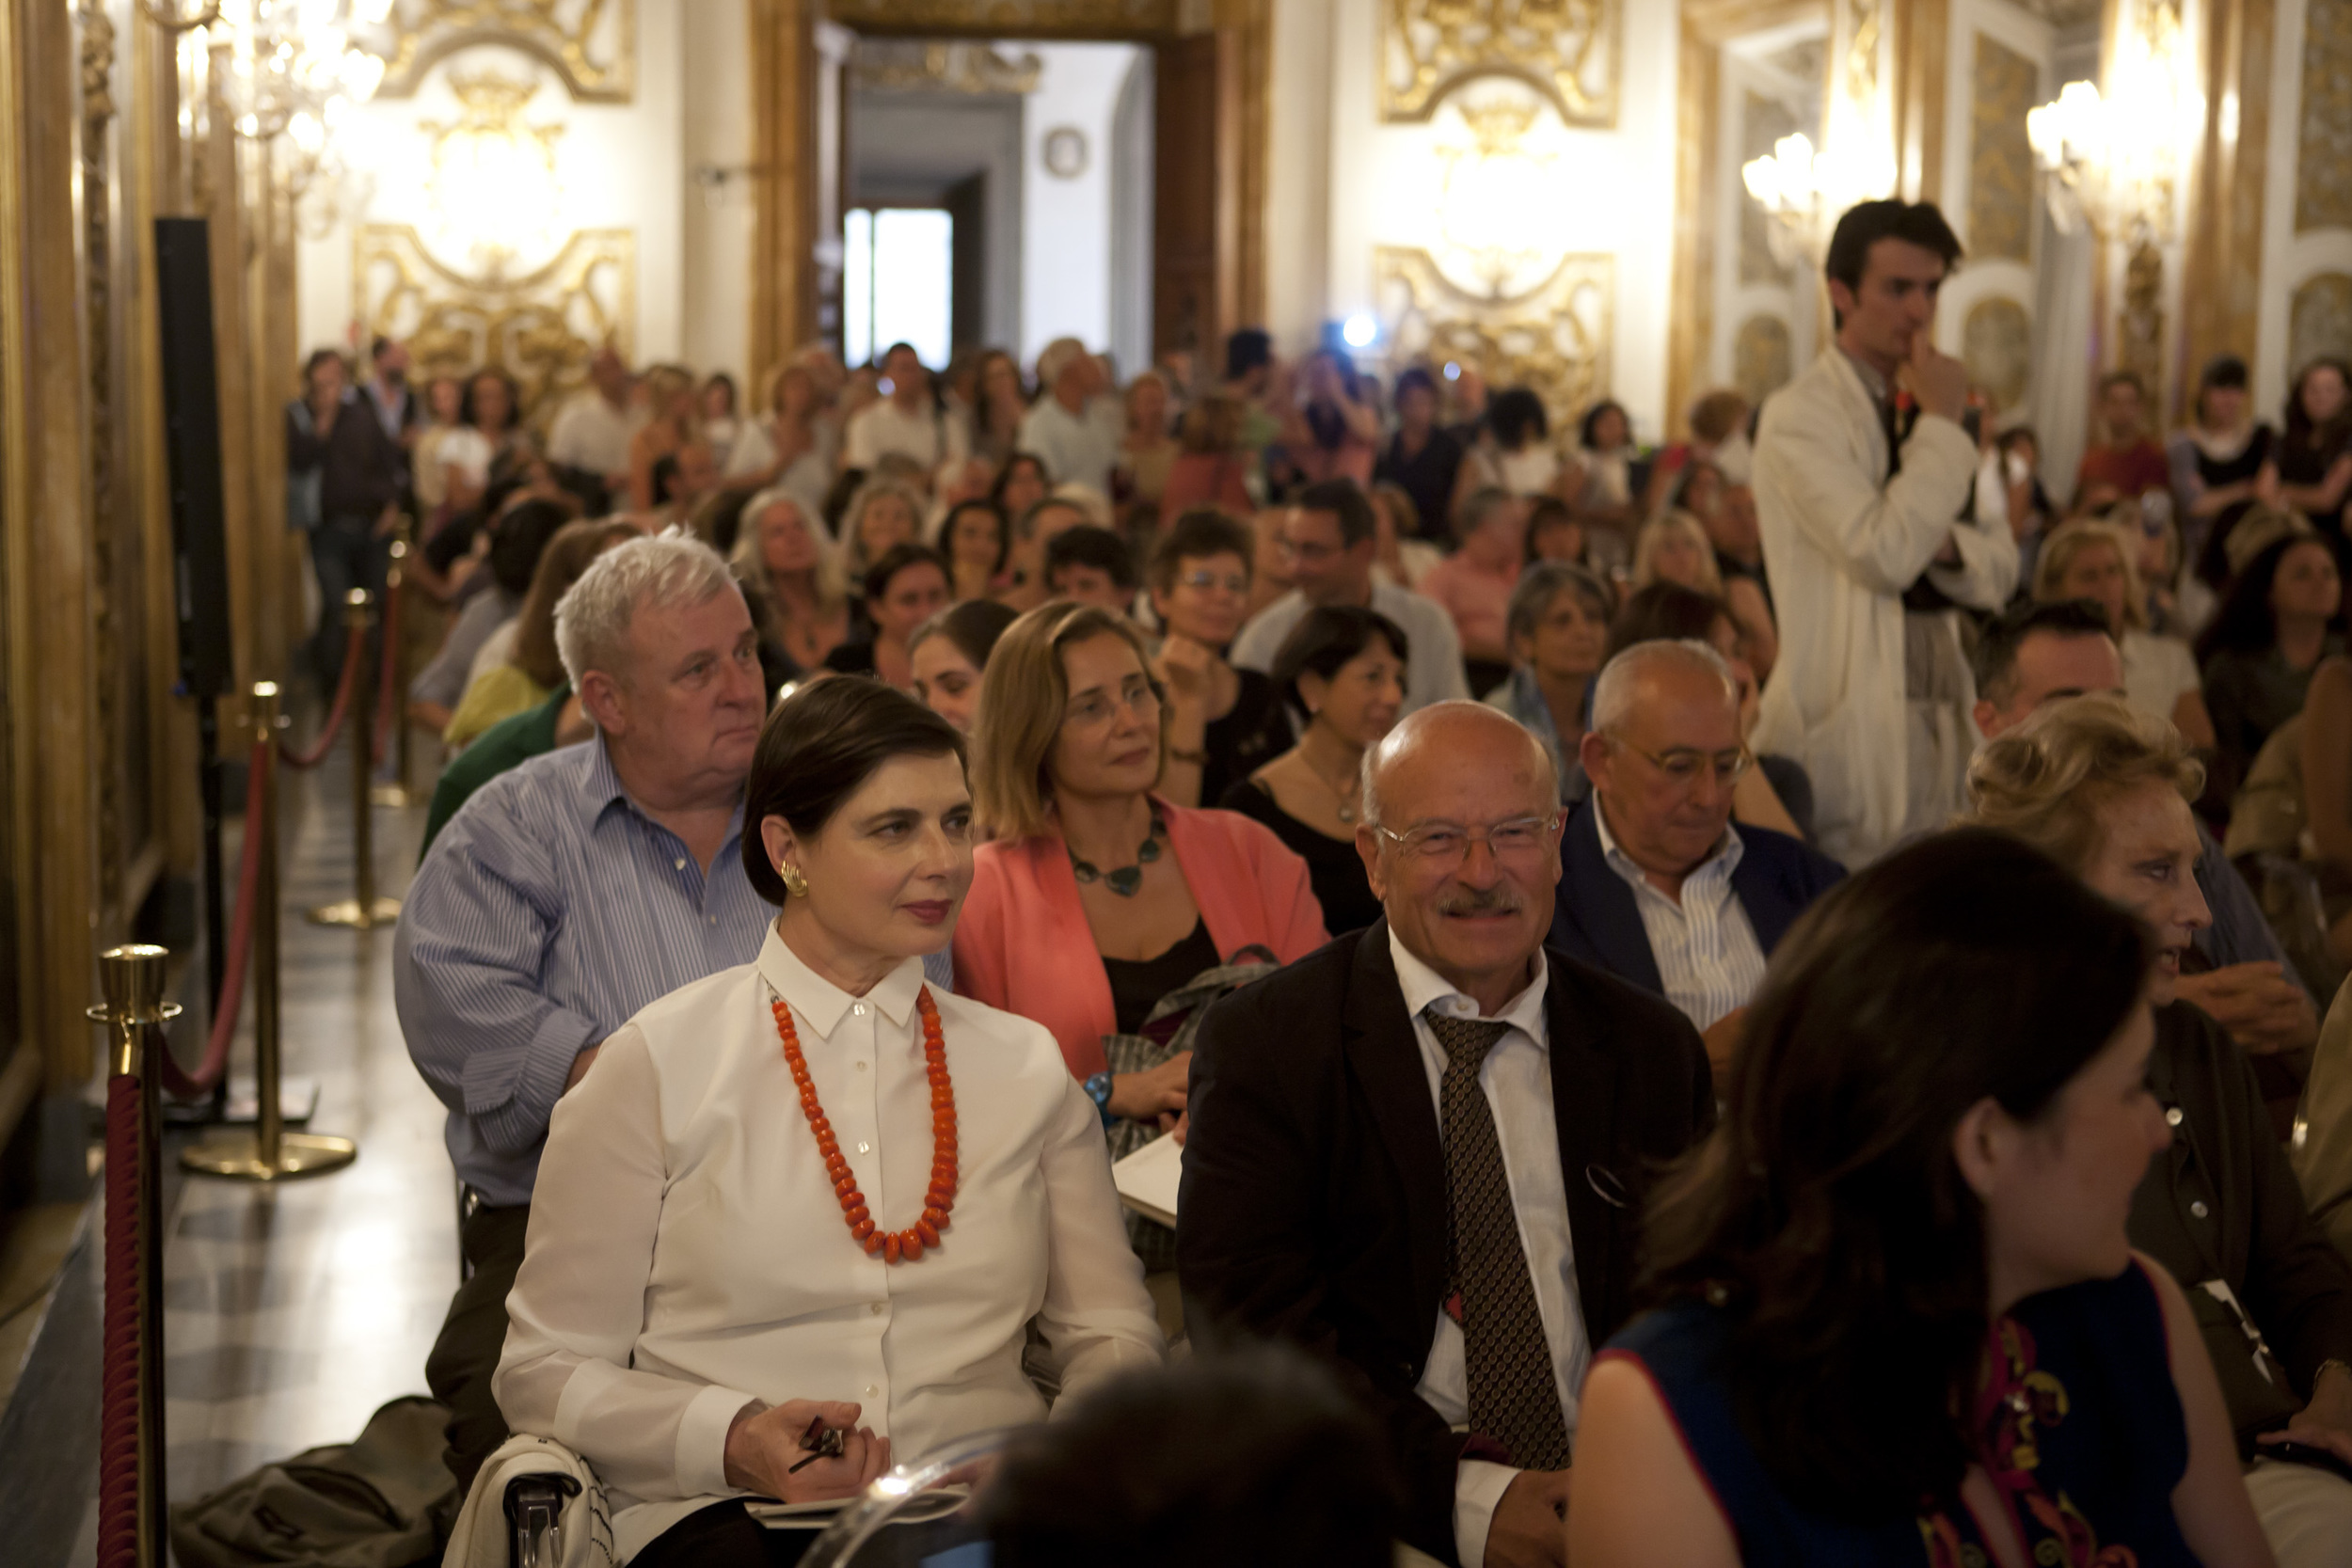 Isabella Rossellini and Volker Schlondorff at the Lectio Magistralis